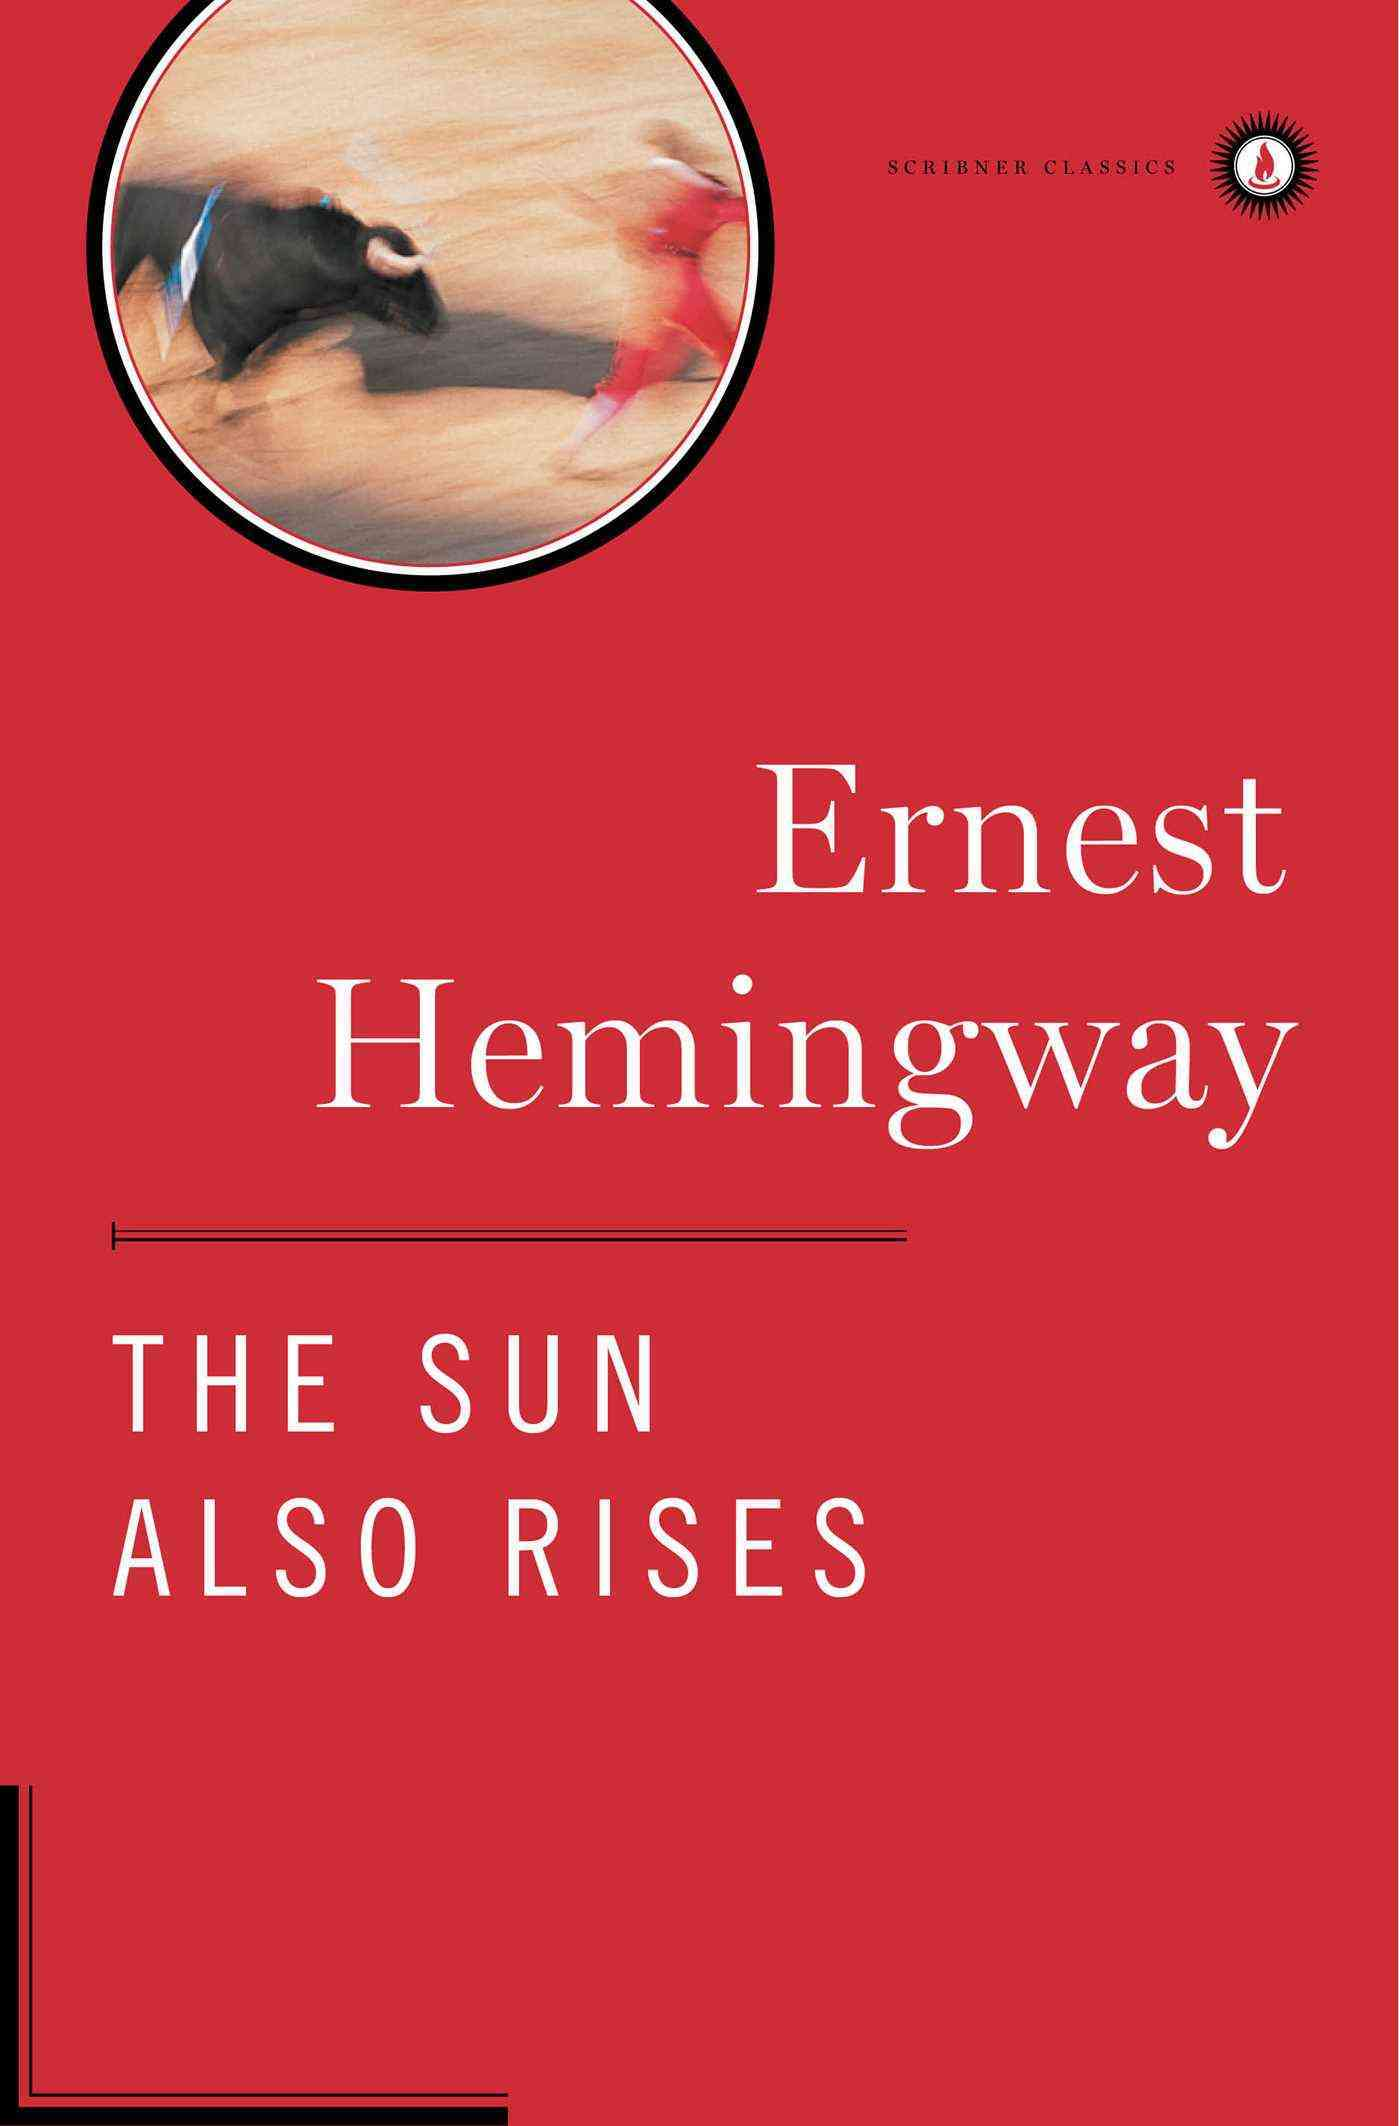 The Sun Also Rises (Hardcover)